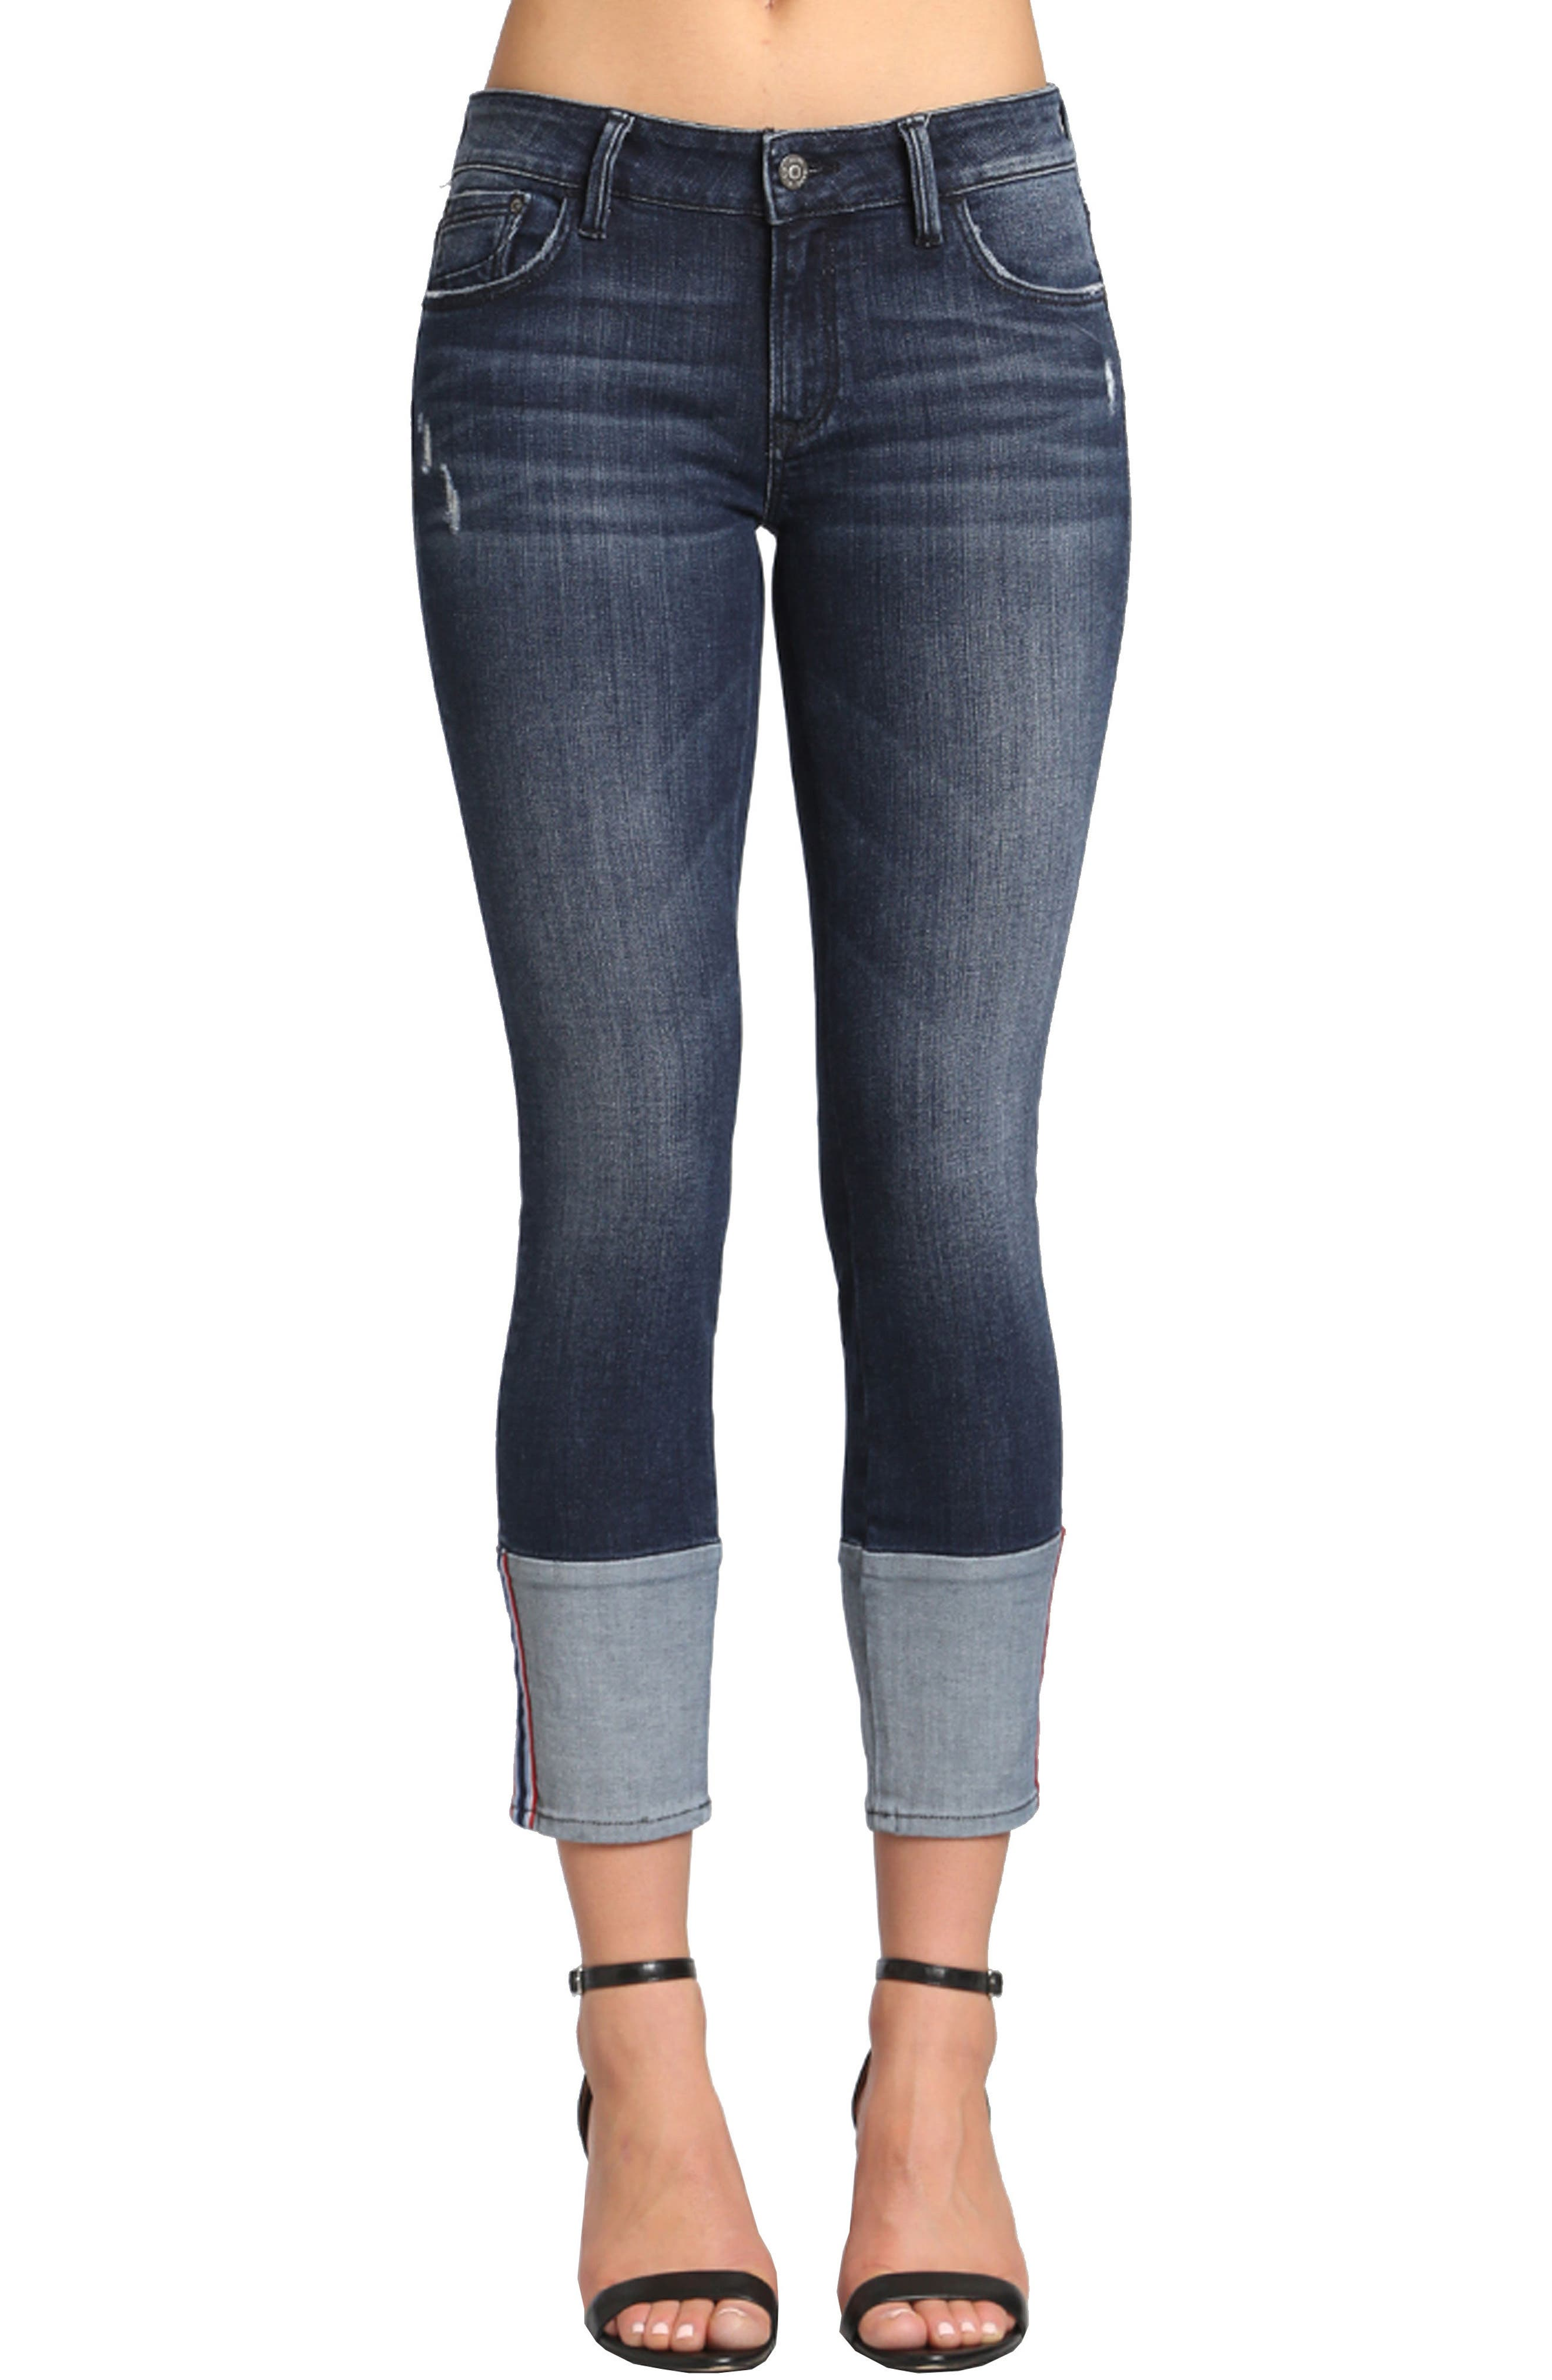 Caisy Cuffed Skinny Crop Jeans,                         Main,                         color,